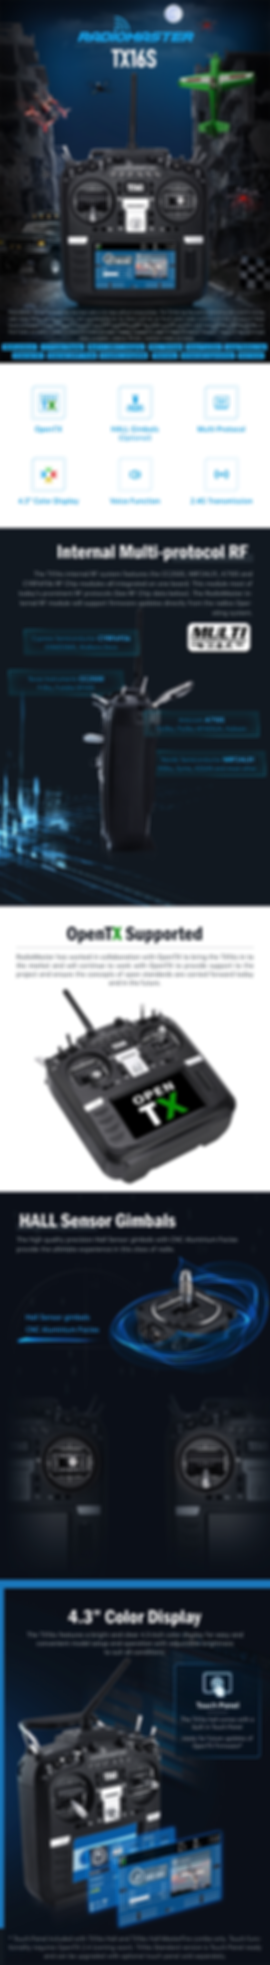 tx16s-page-a.png